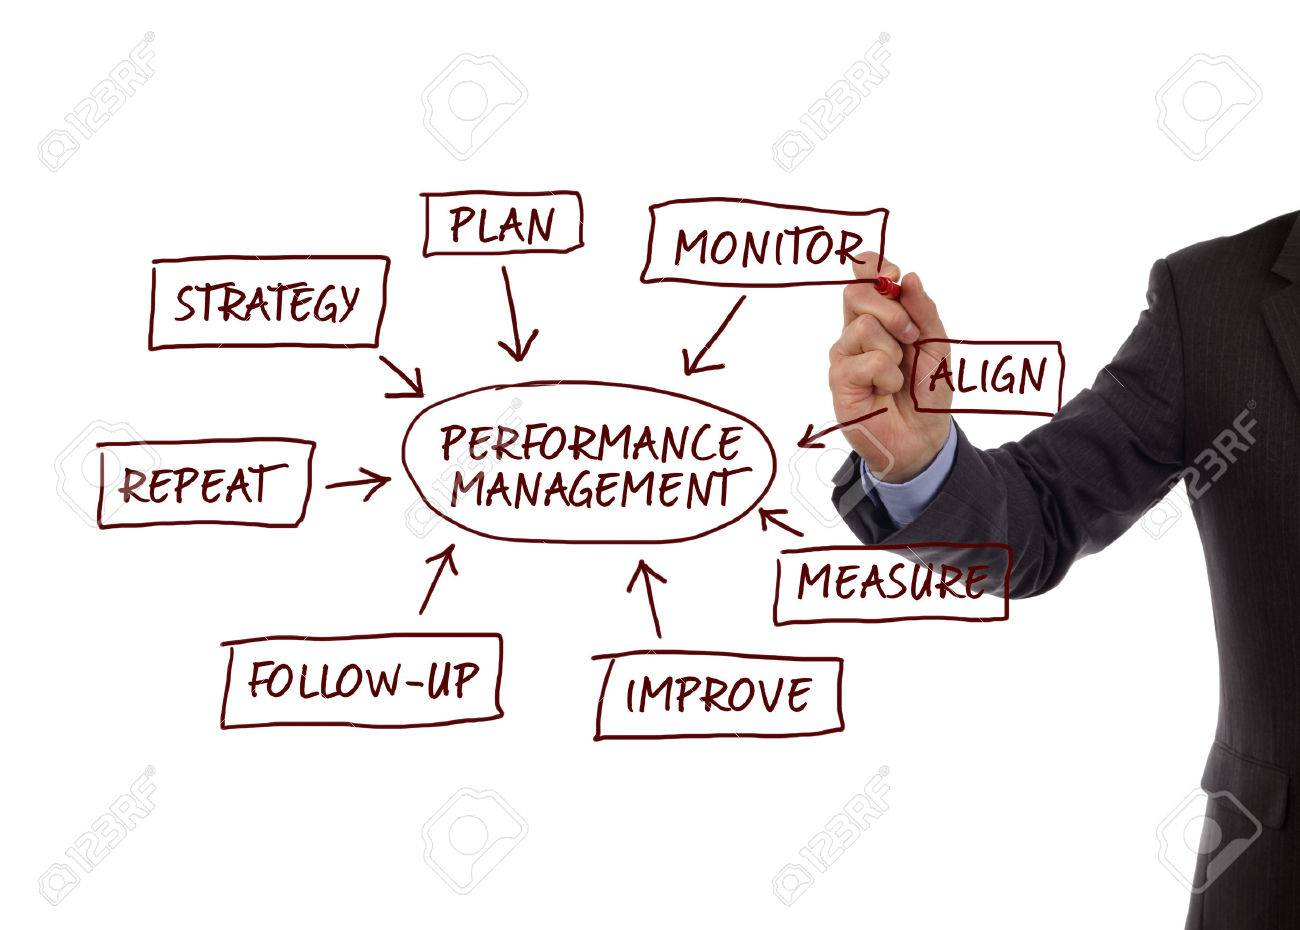 Performance management flow chart showing key business terms strategy, plan, monitor, align, measure, improve, follow-up and repeat Stock Photo - 25085142